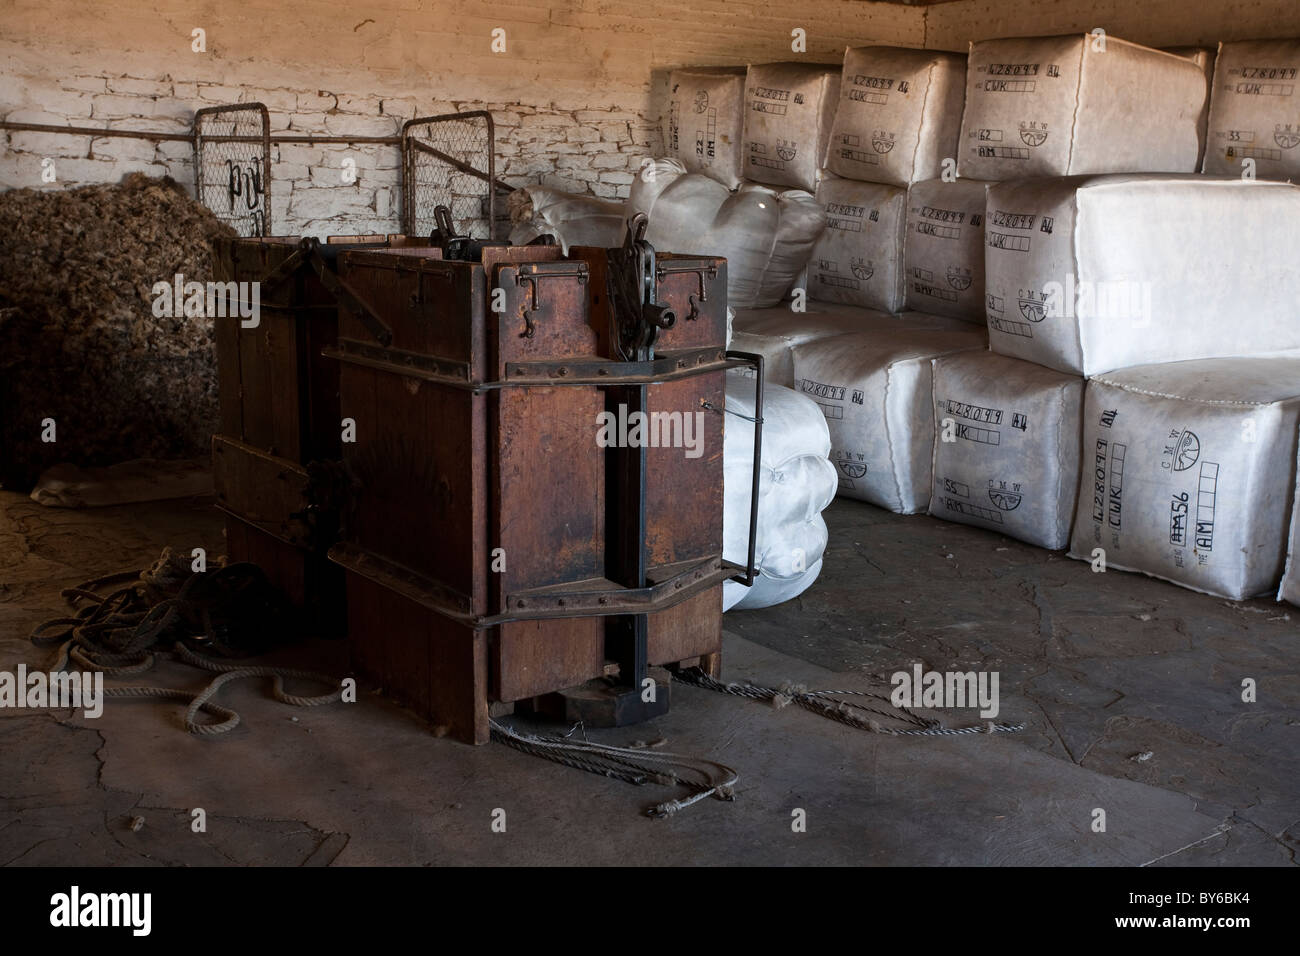 A wooden wool press and bales of wool in a shearing shed. - Stock Image